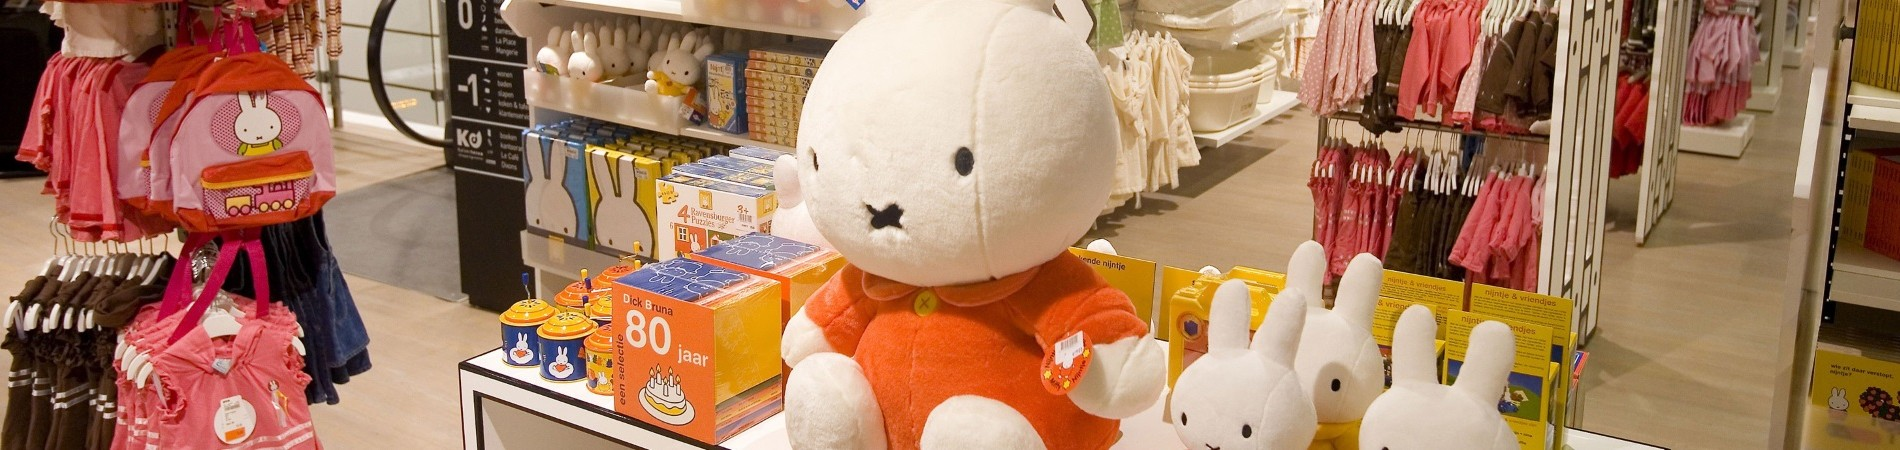 Miffy is a global children's brand